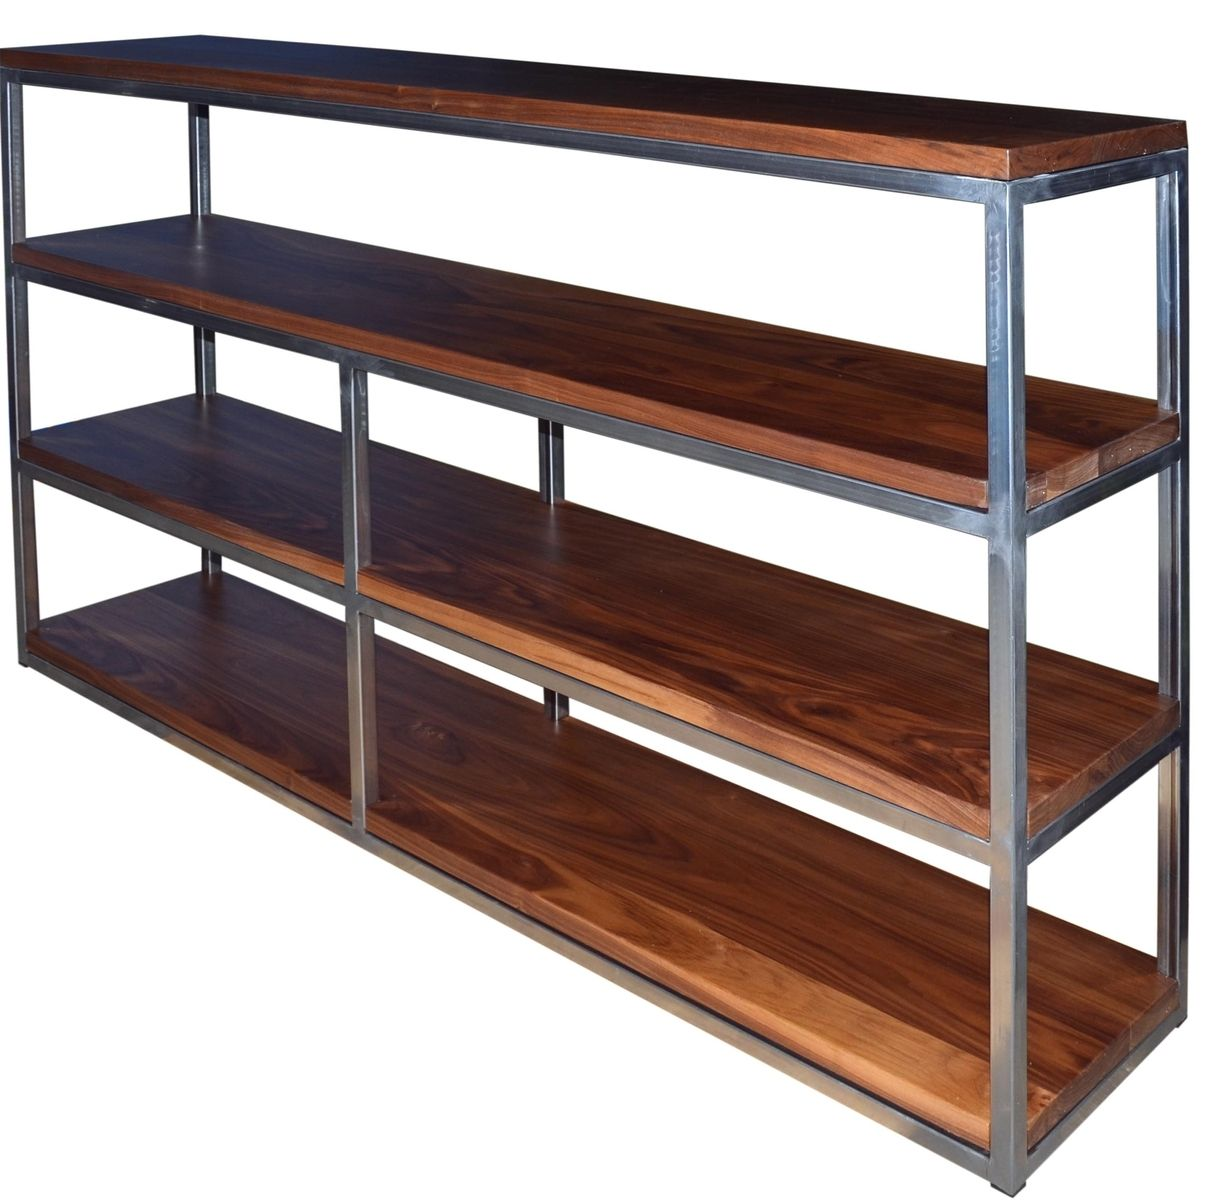 handmade floating walnut wood and steel shelf by fabitecture. Black Bedroom Furniture Sets. Home Design Ideas